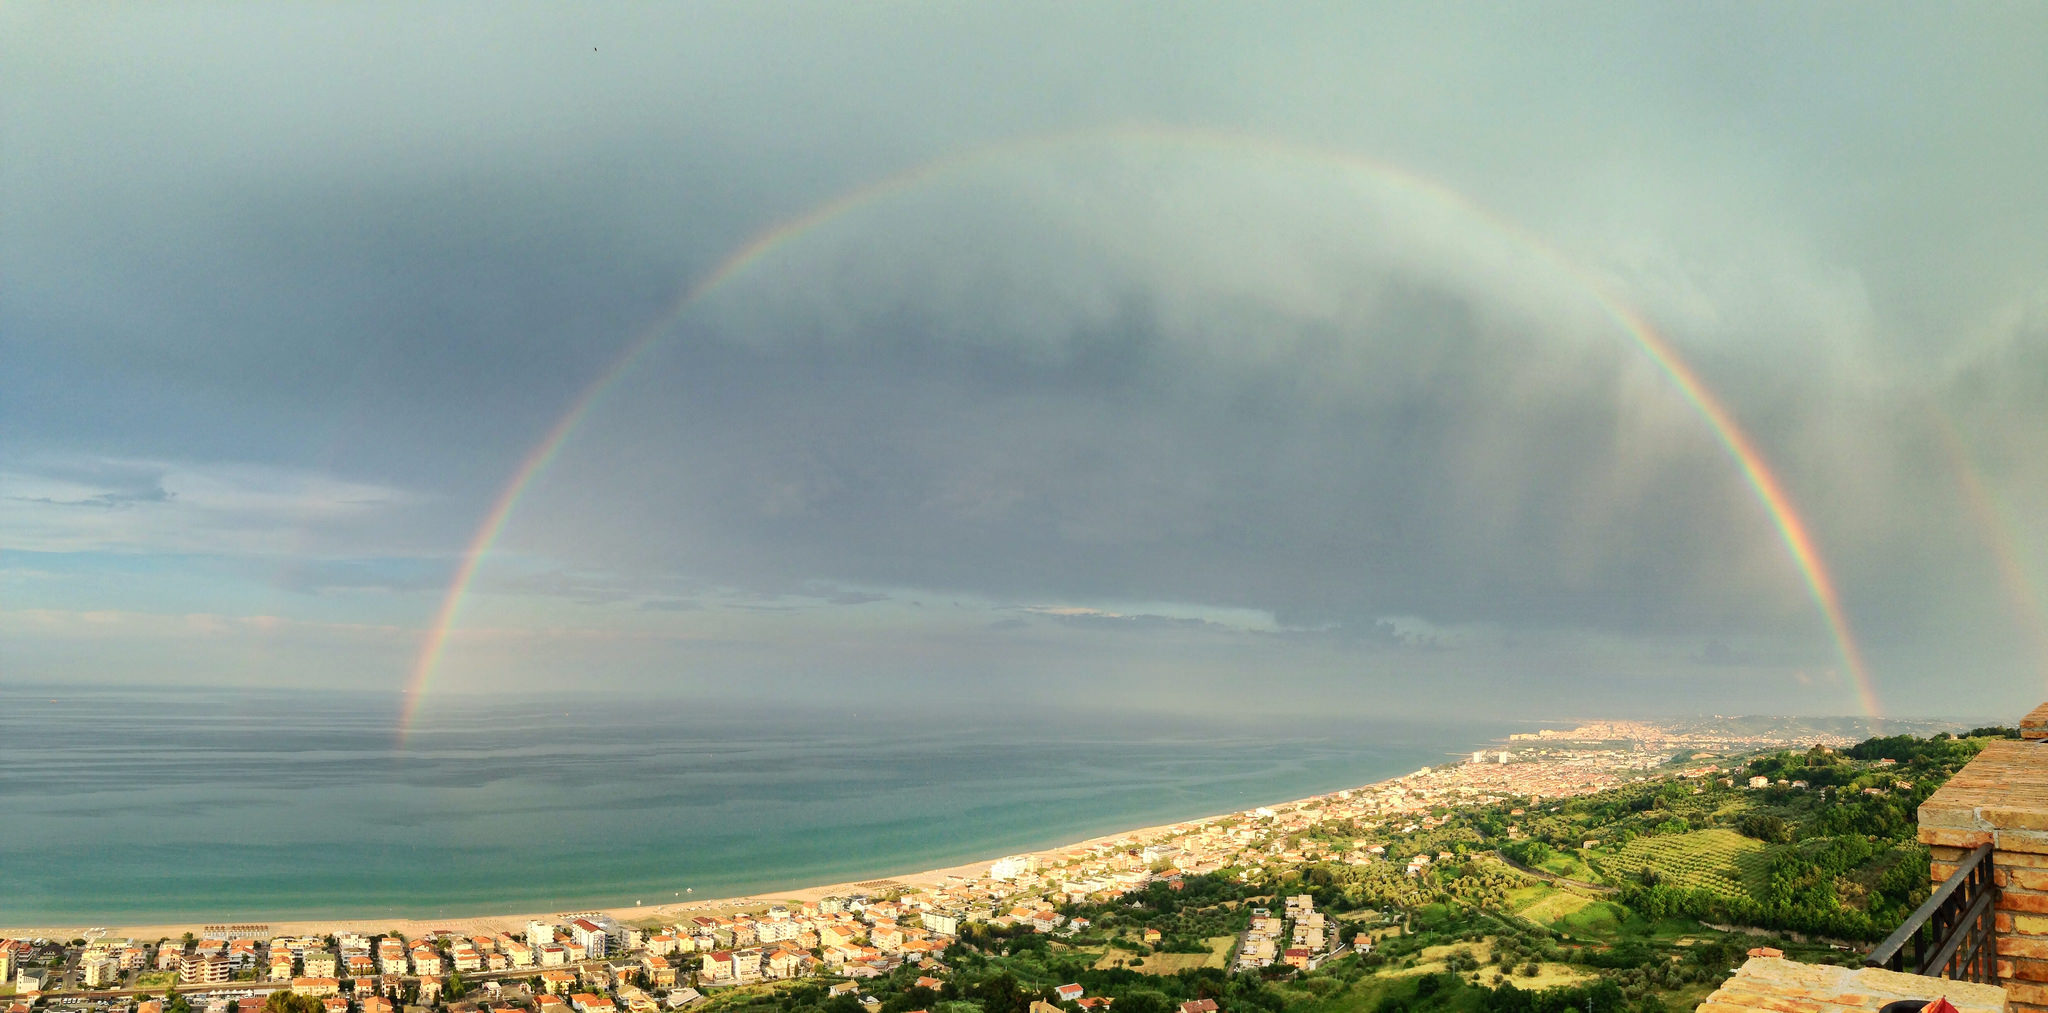 rainbow over a coastline